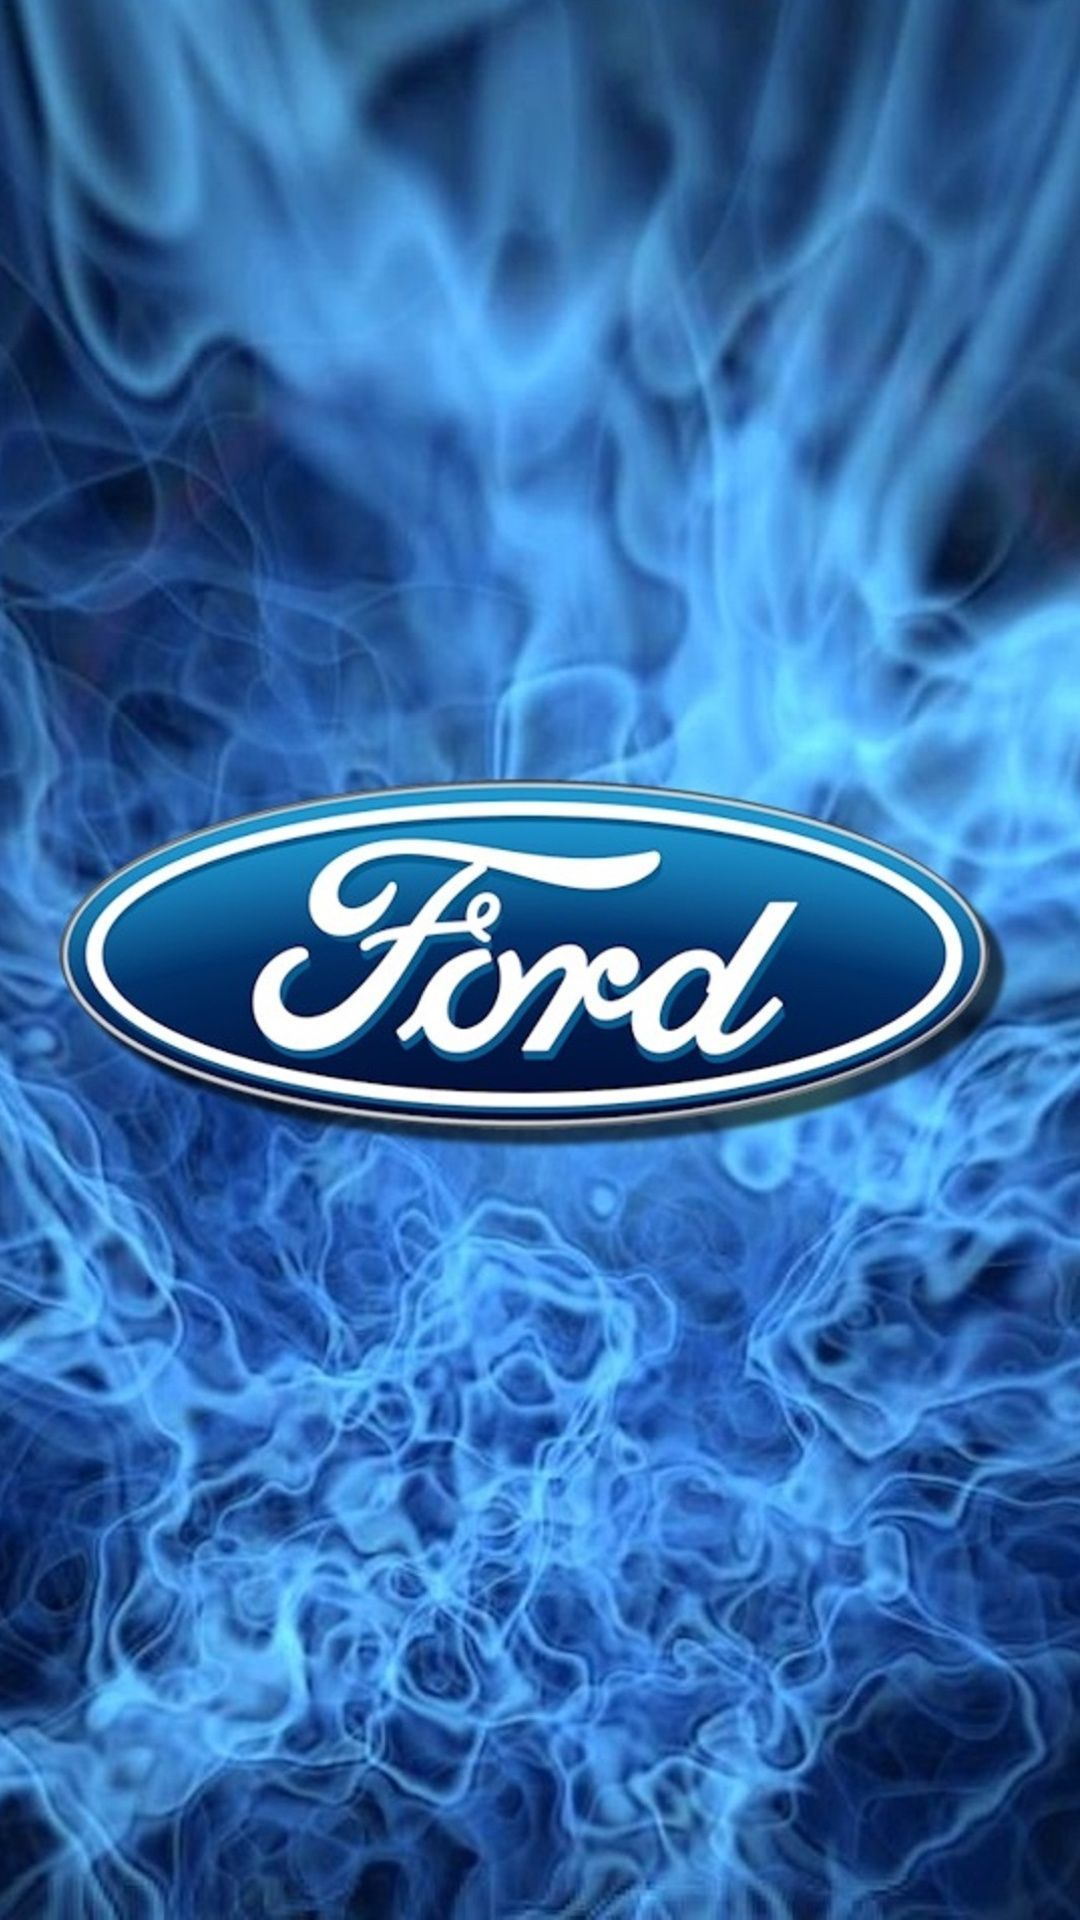 Ford Android Iphone Desktop Hd Backgrounds Wallpapers 1080p 4k 113880 Hdwallpapers Androidwallpapers Iphonewallpaper Ford Trucks Ford Ford Truck